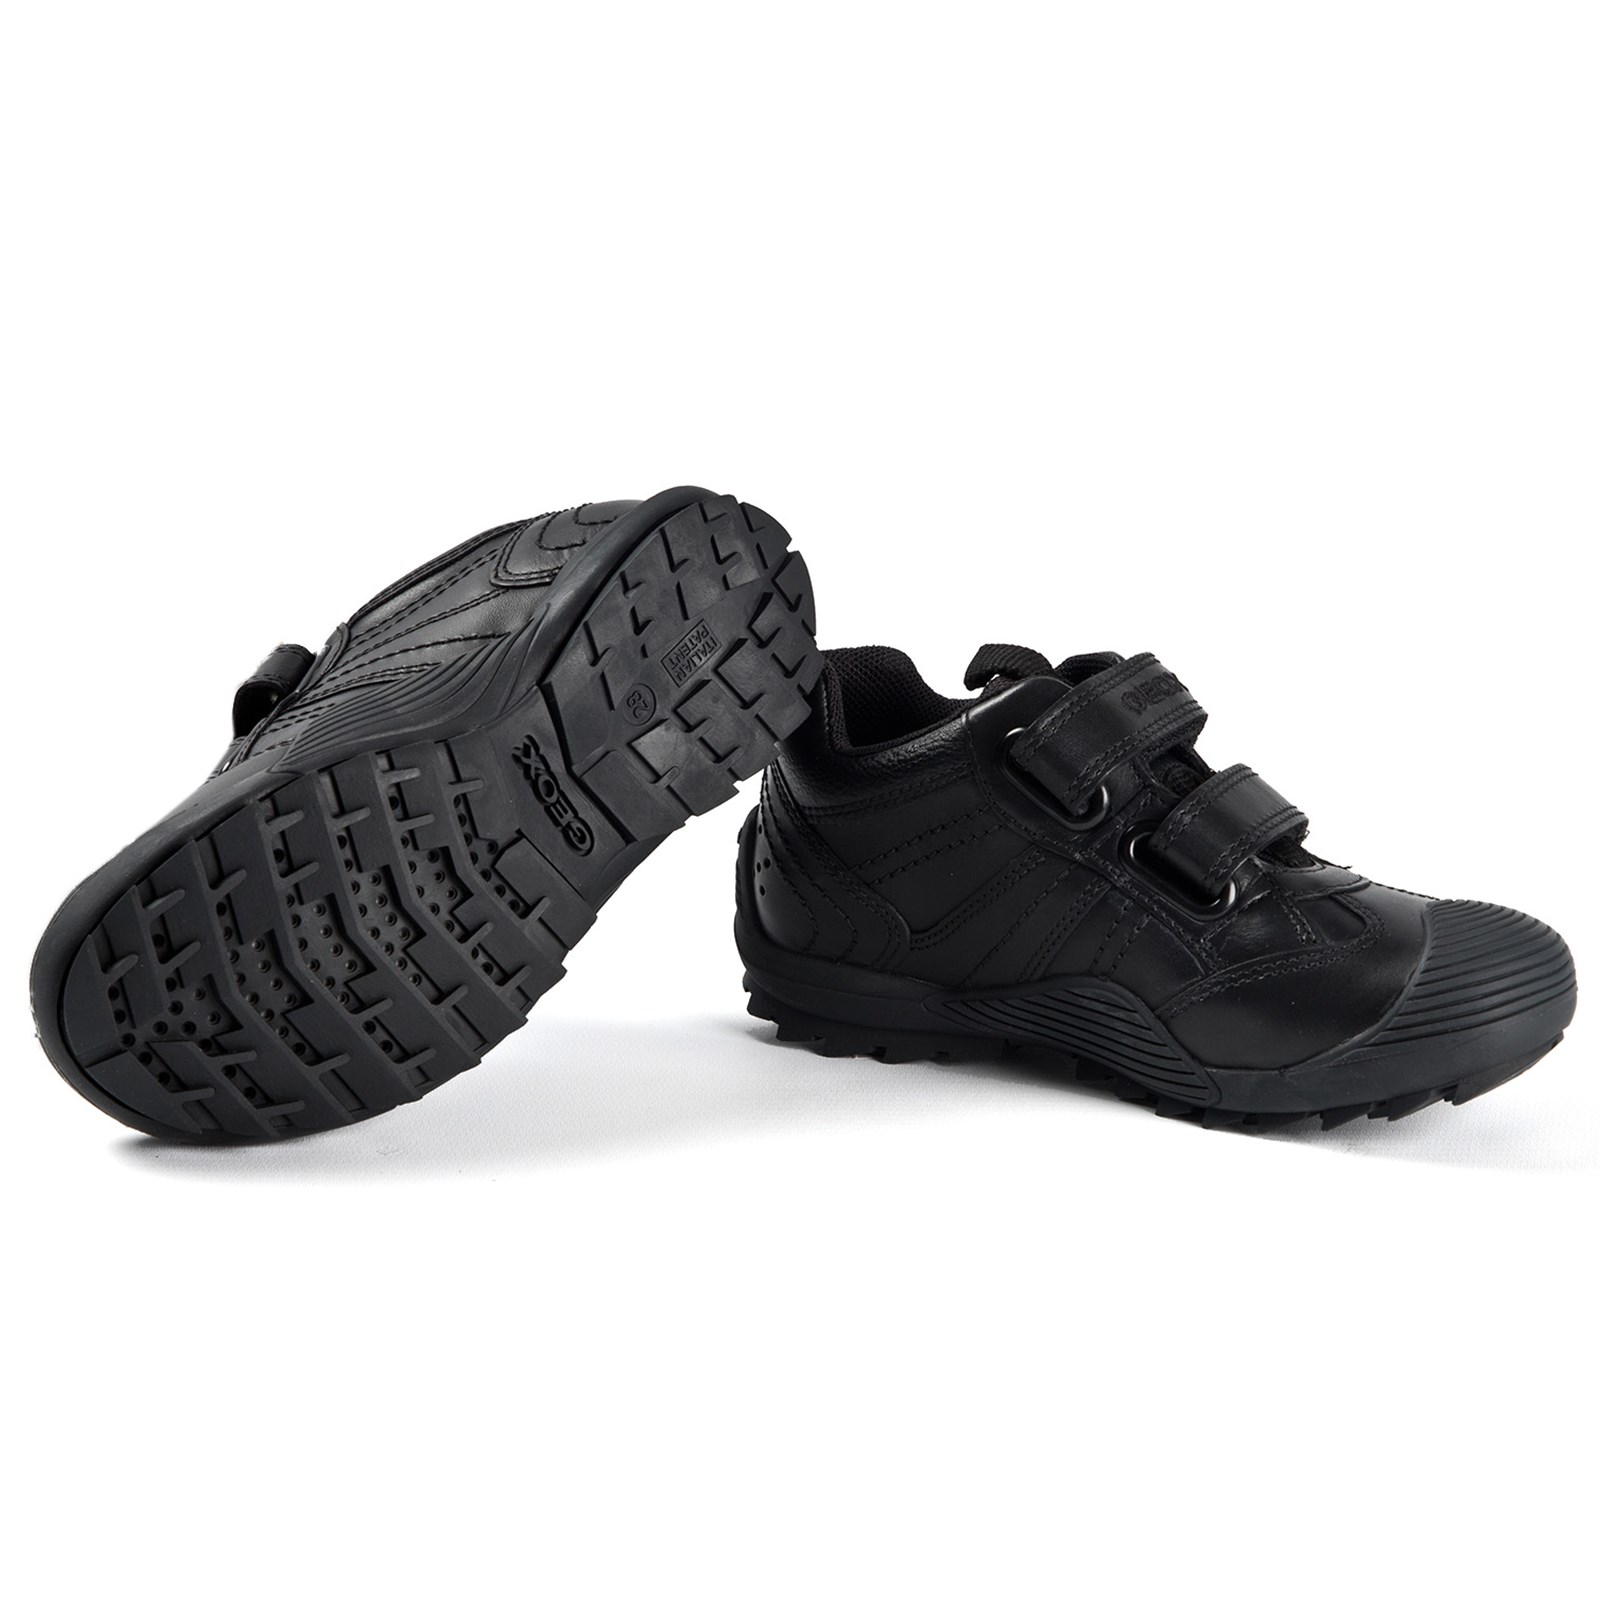 avaro Moviente Desnudarse  Geox - Savage Shoes Black - Babyshop.com